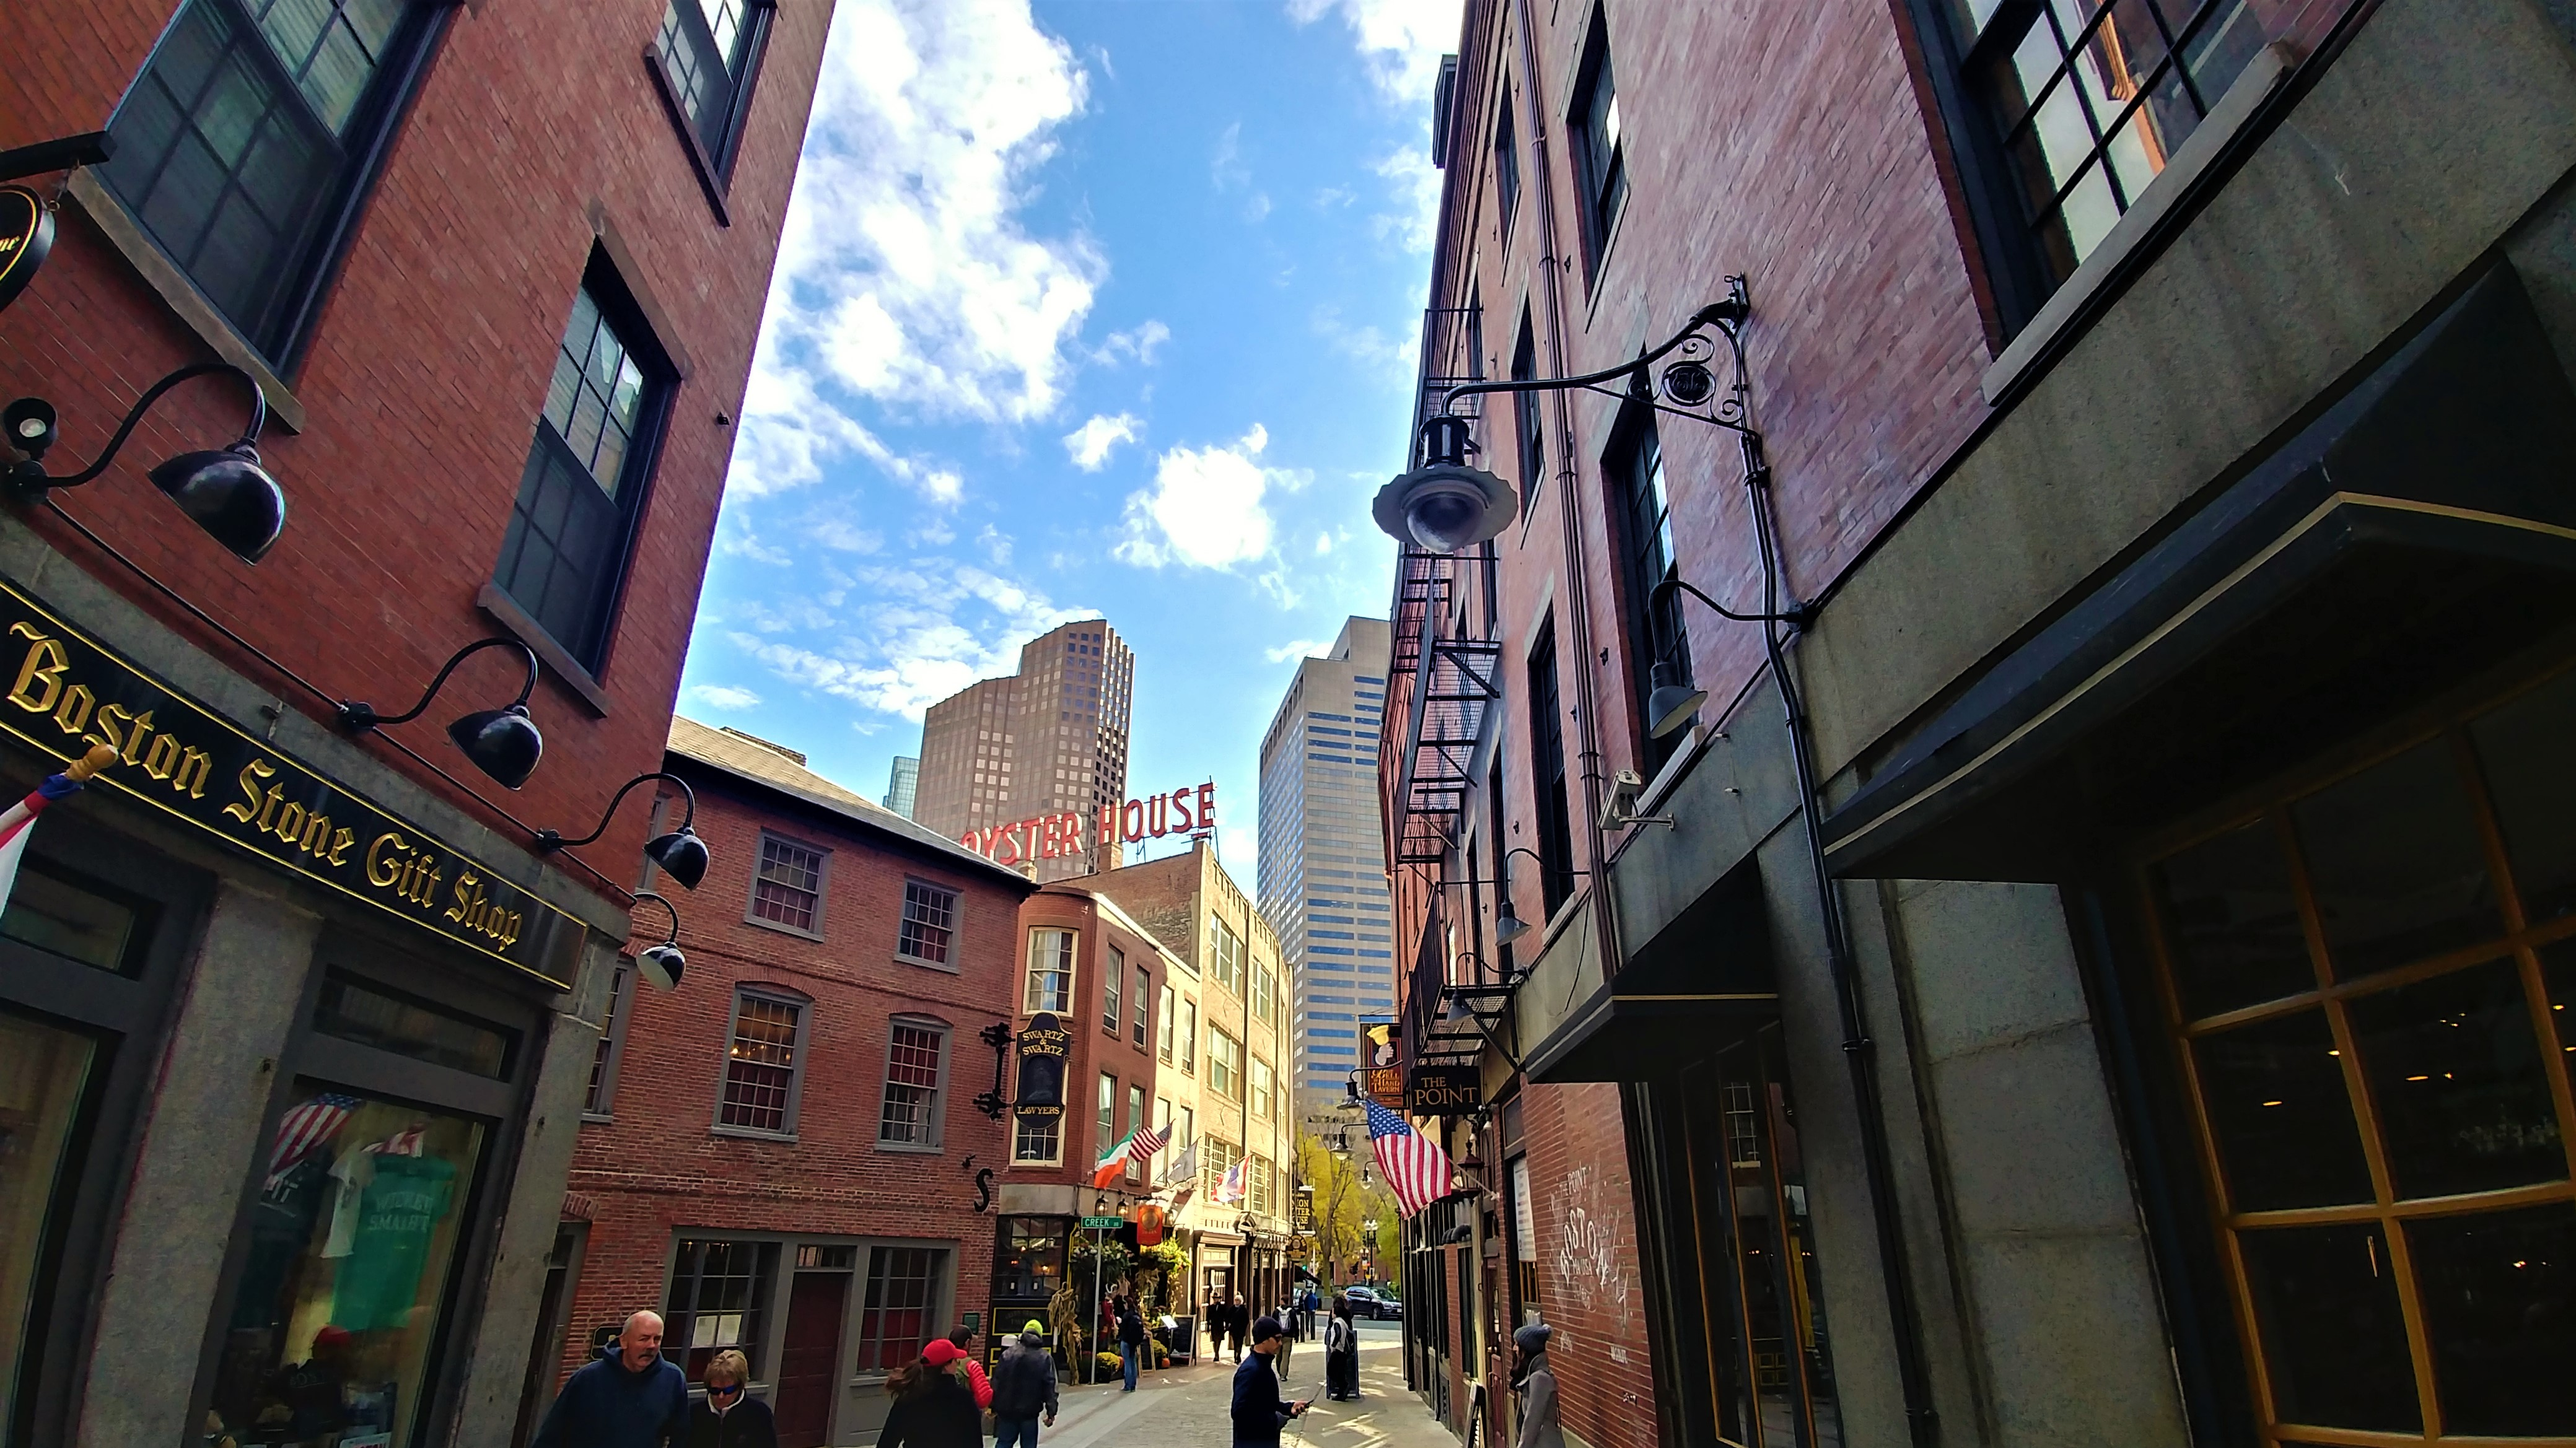 freedom trail boston usa voyage road-trip halloween